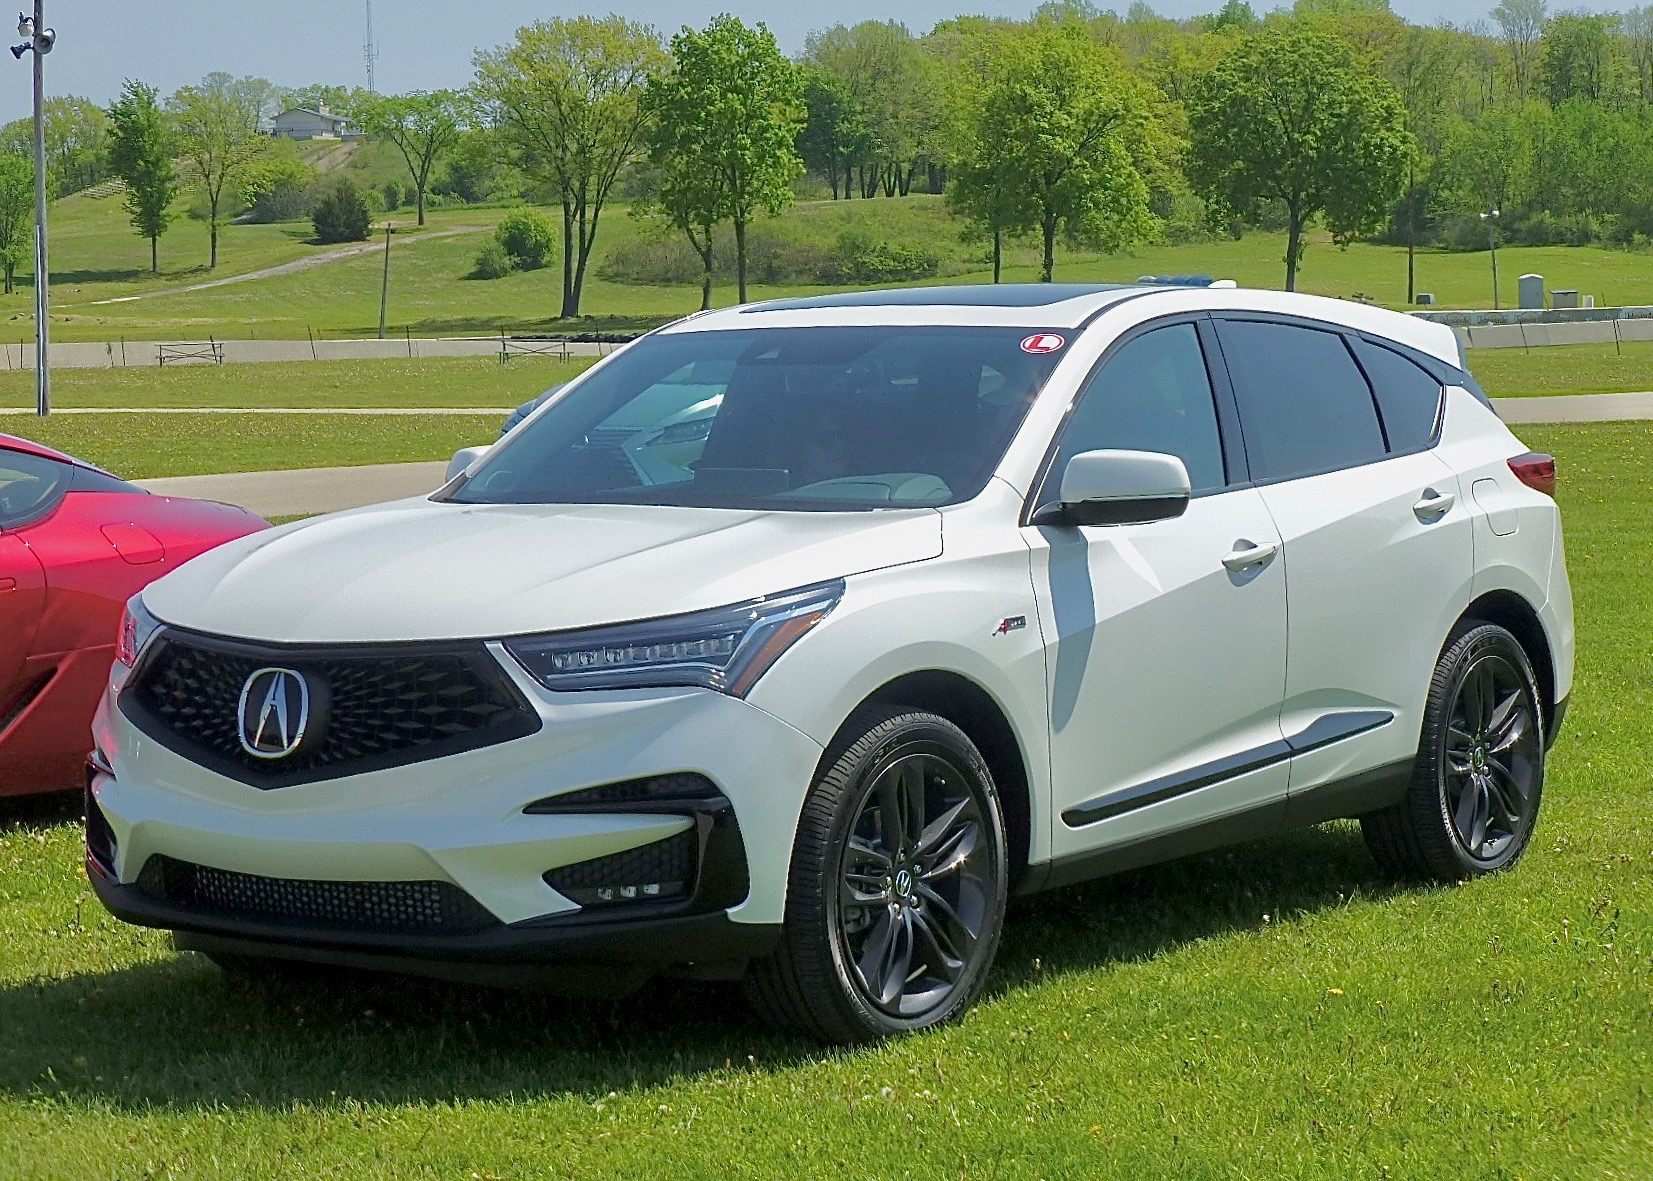 Acura made an official debut of the 2019 RDX at the MAMA Spring Rally, raising the technology and performance of the midsiz SUV.